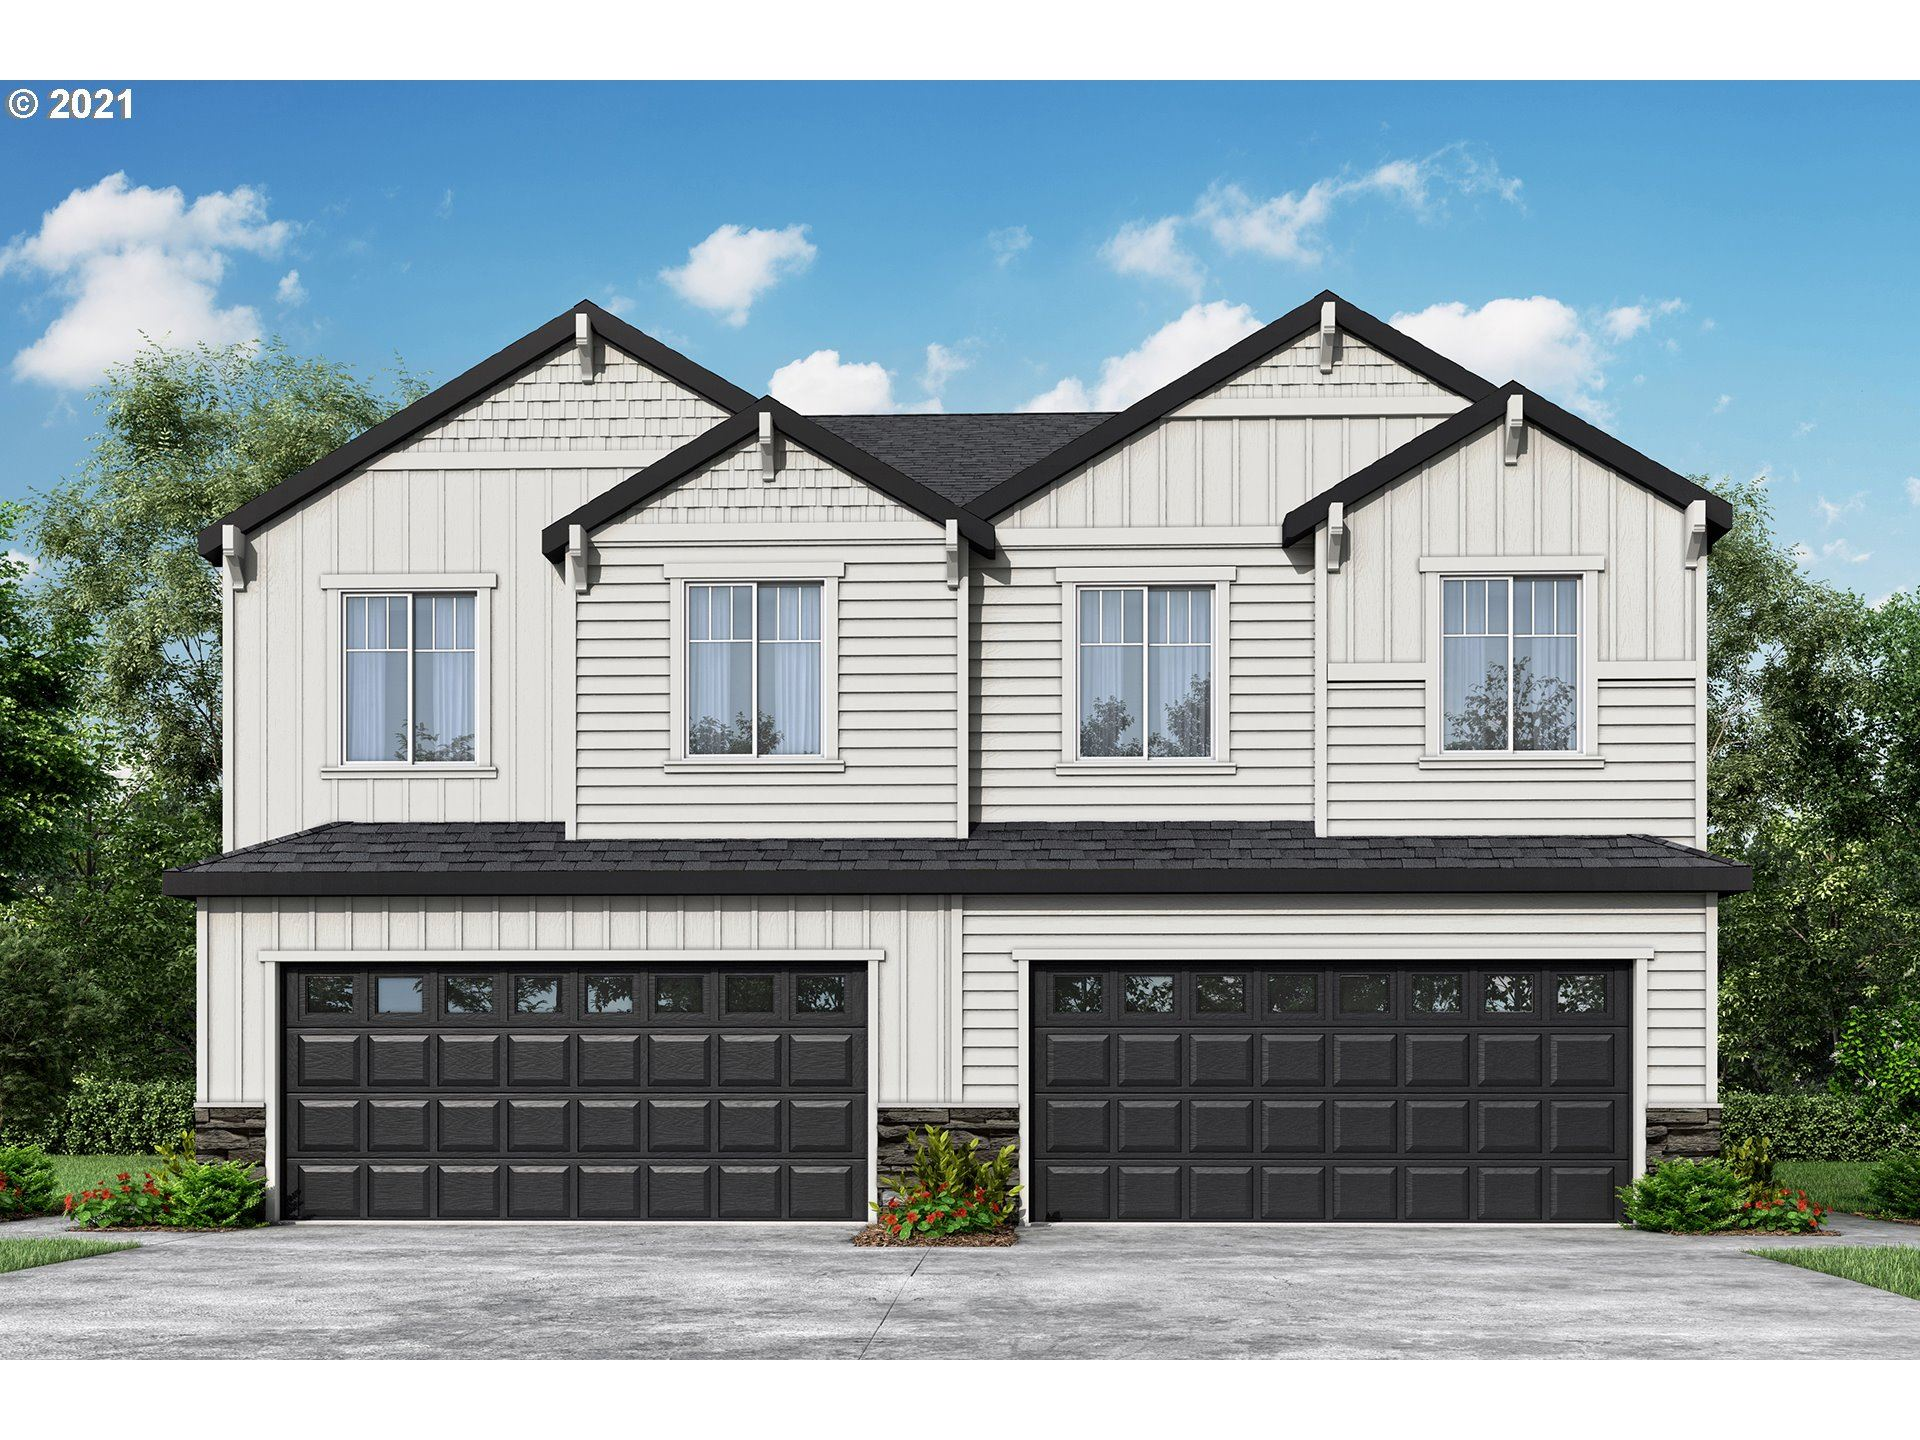 1372 19th PL #109, Forest Grove, OR 97116 - MLS#: 21169891